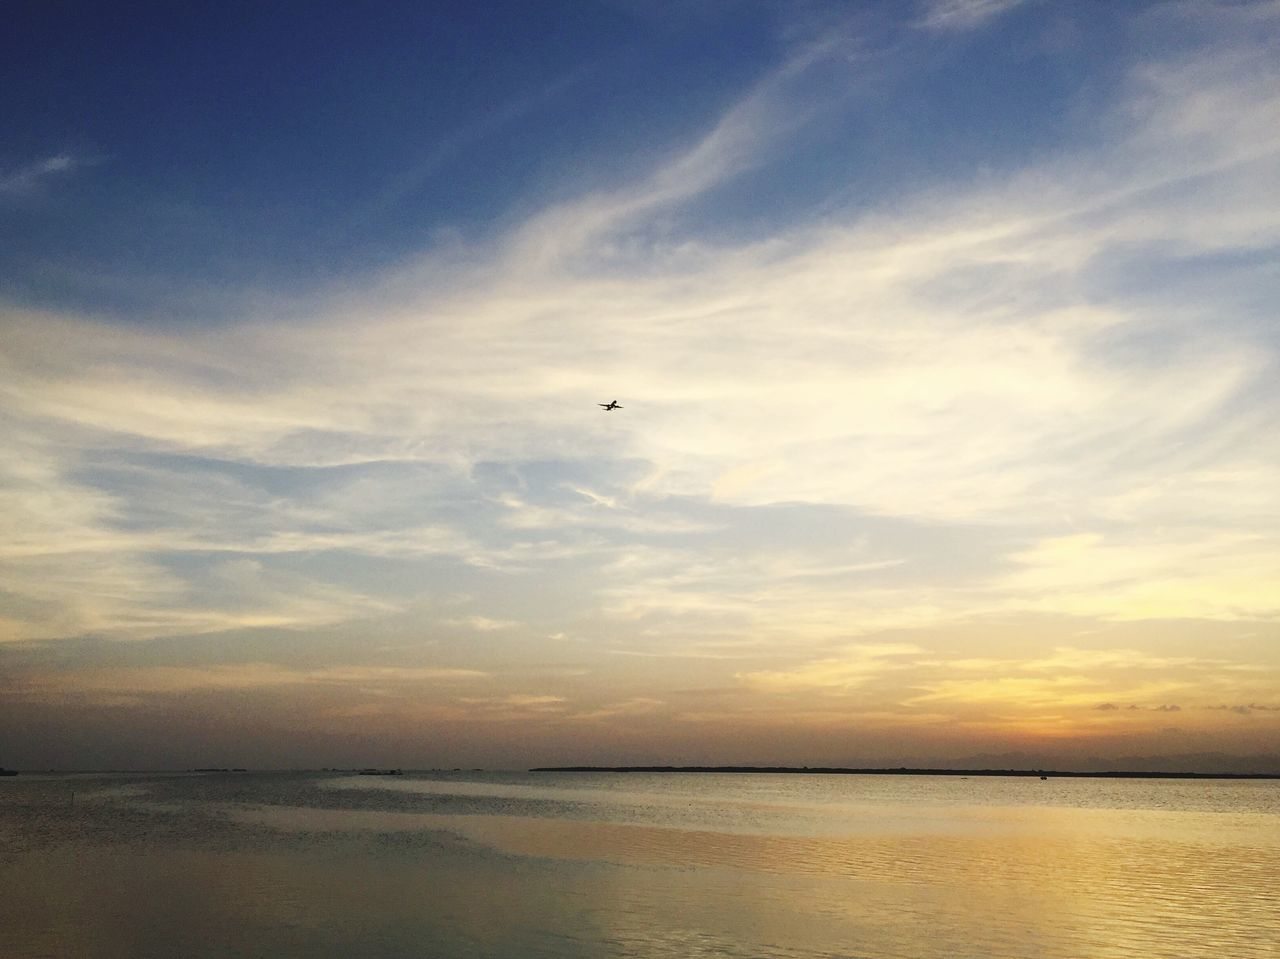 Sunset Sky Nature Scenics Beauty In Nature Outdoors Day Travel Destinations Tourism Cloud - Sky Landscape